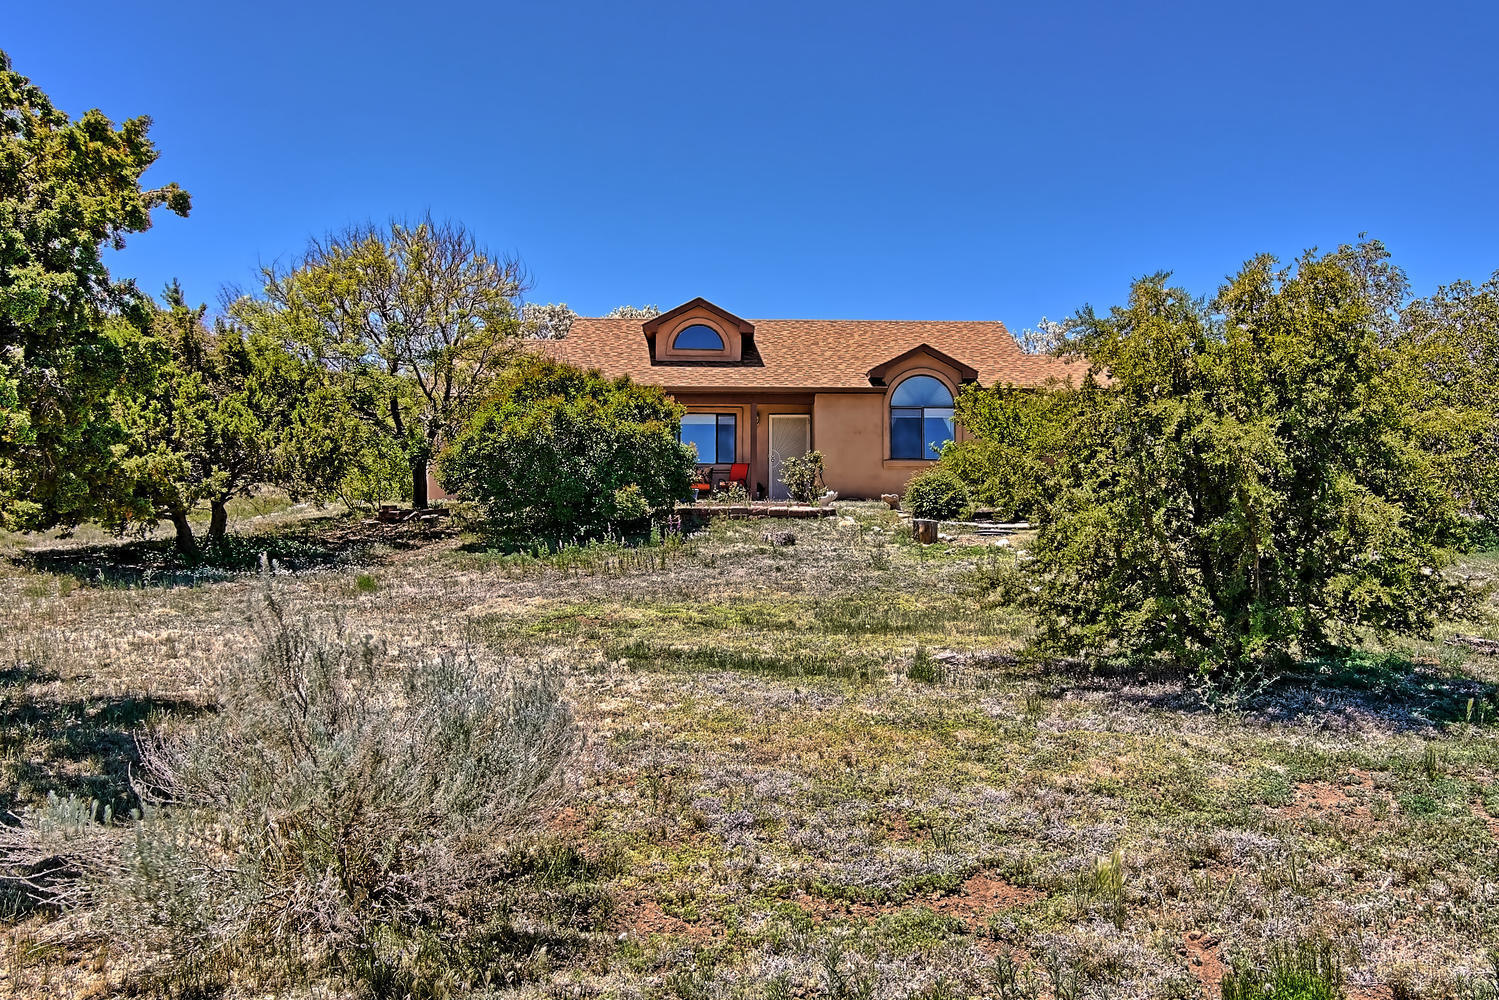 33 Palomino Road, Edgewood, NM 87015 - Edgewood, NM real estate listing